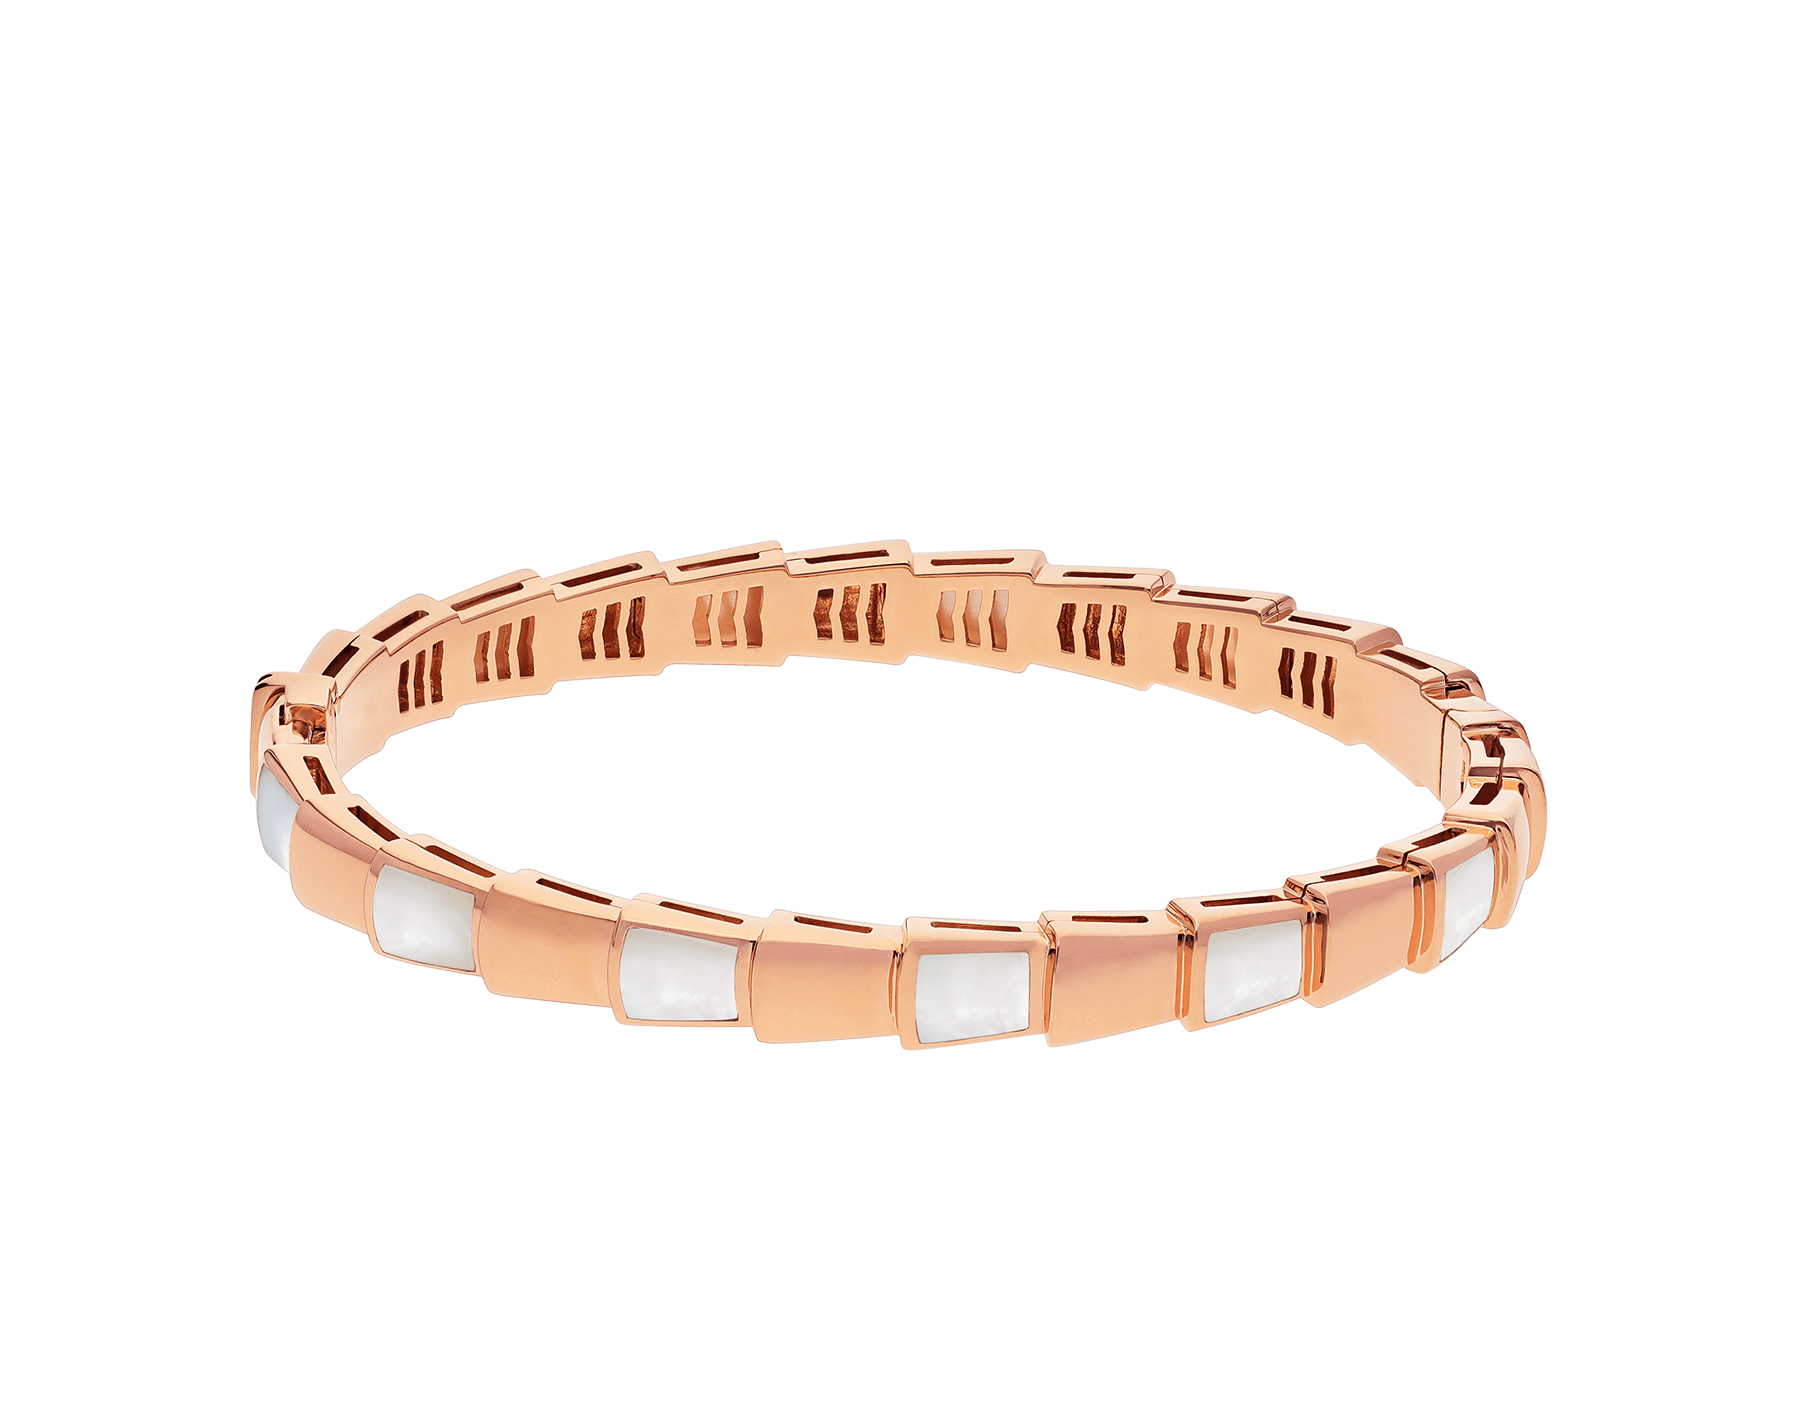 Serpenti Viper 18 kt rose gold bracelet set with mother-of-pearl elements. (height 6 mm) BR858419 image 2